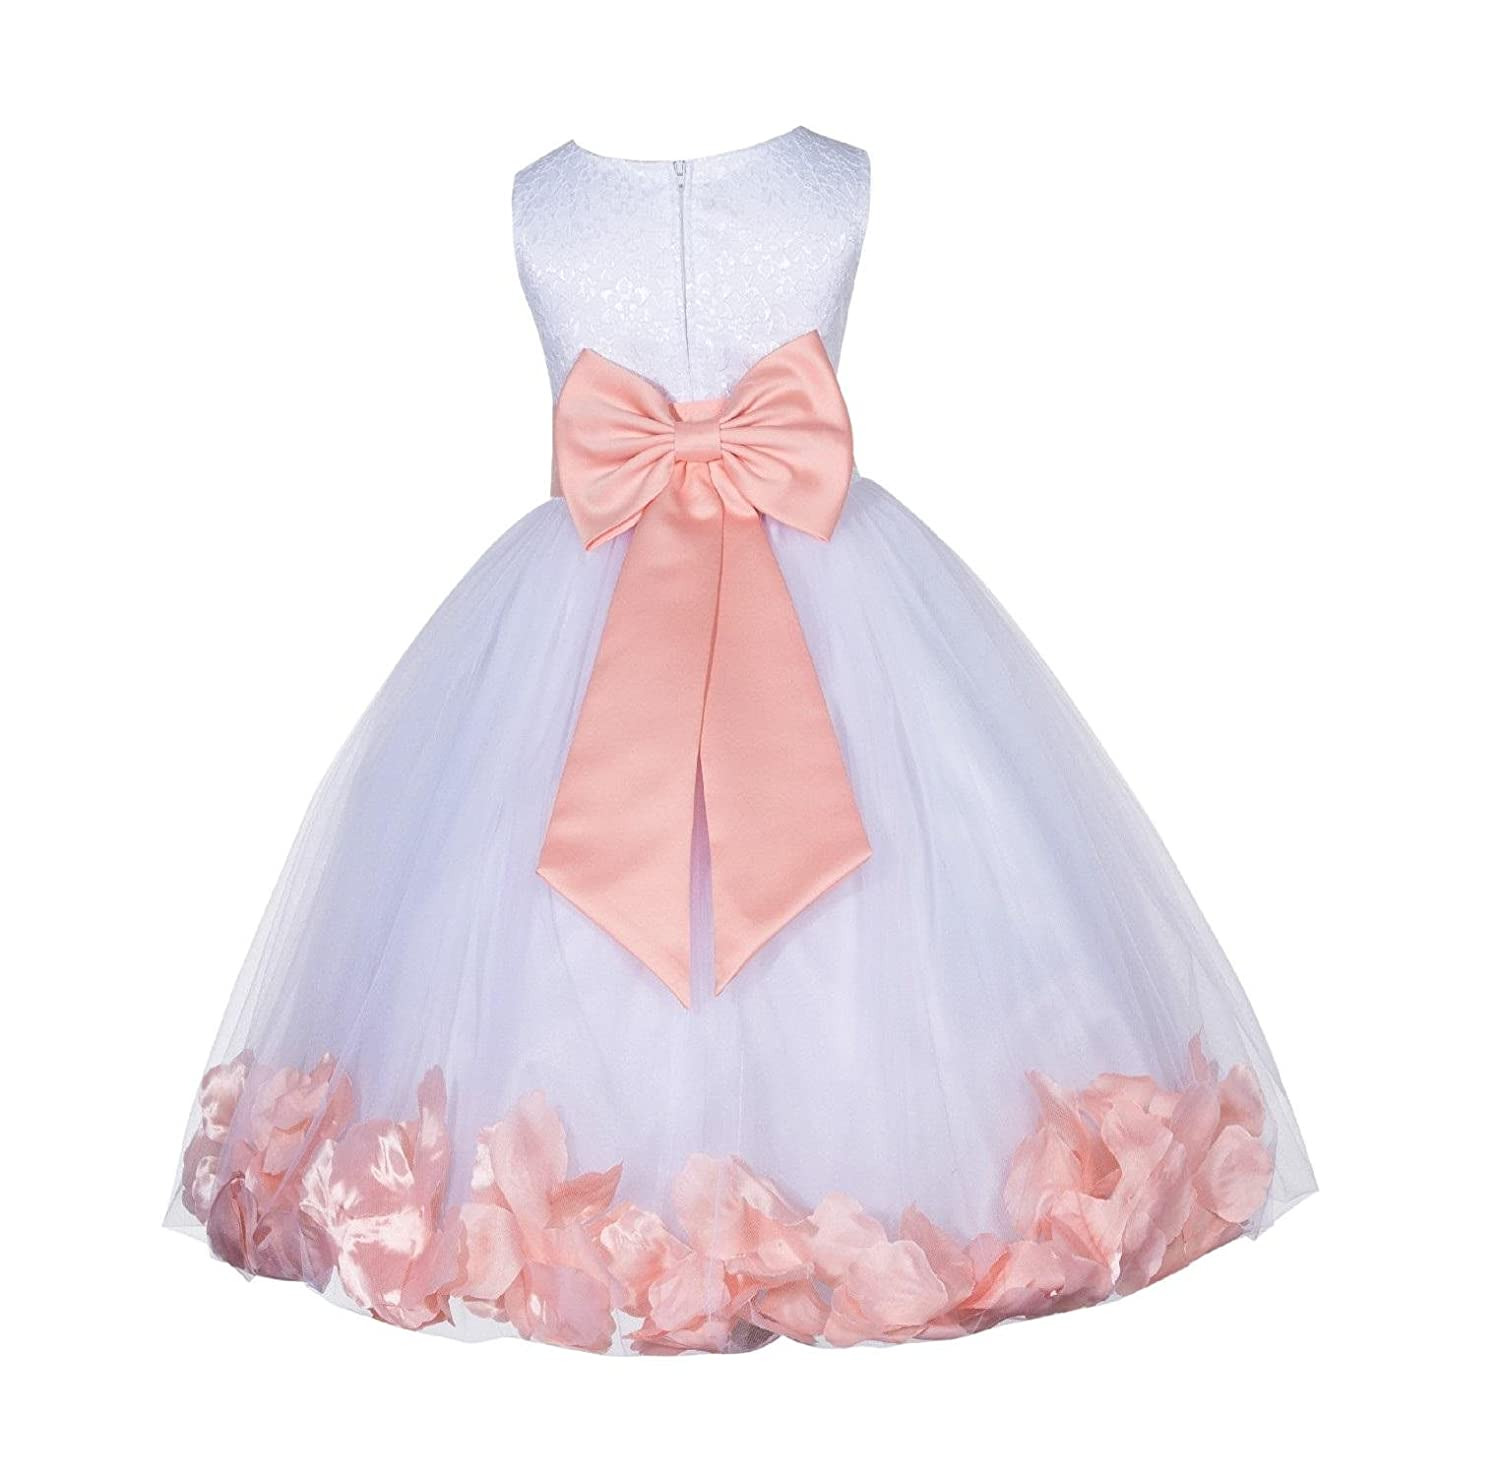 f5f53928382 Amazon.com  ekidsbridal Wedding Pageant Floral Lace top Rose Petals White  Tulle Flower Girl Dress 165T  Clothing